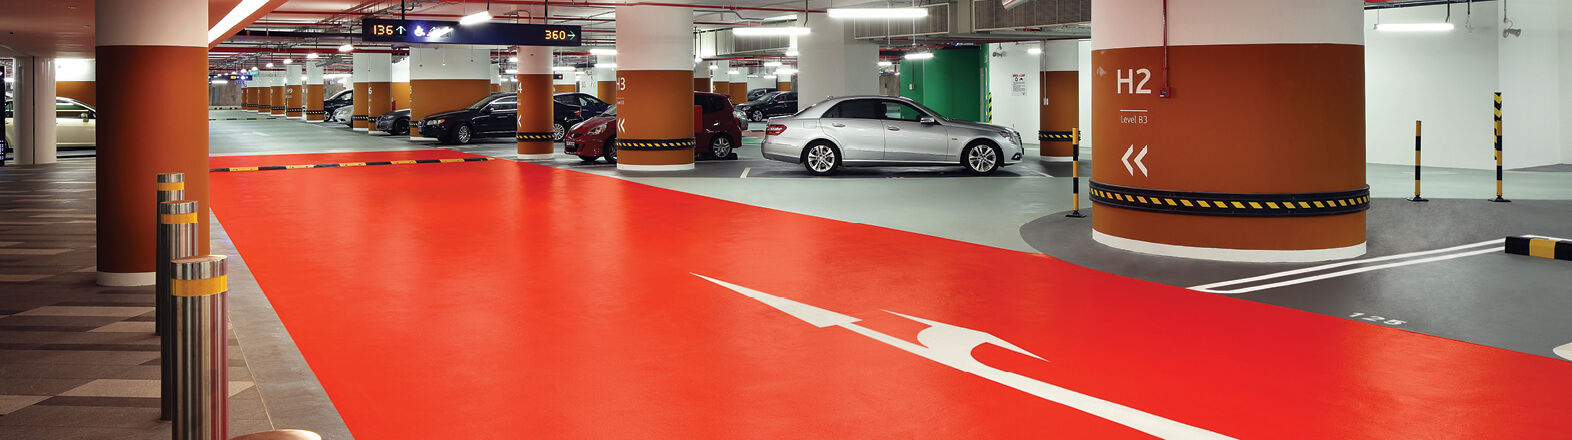 amer-parking-deck-coatings-2